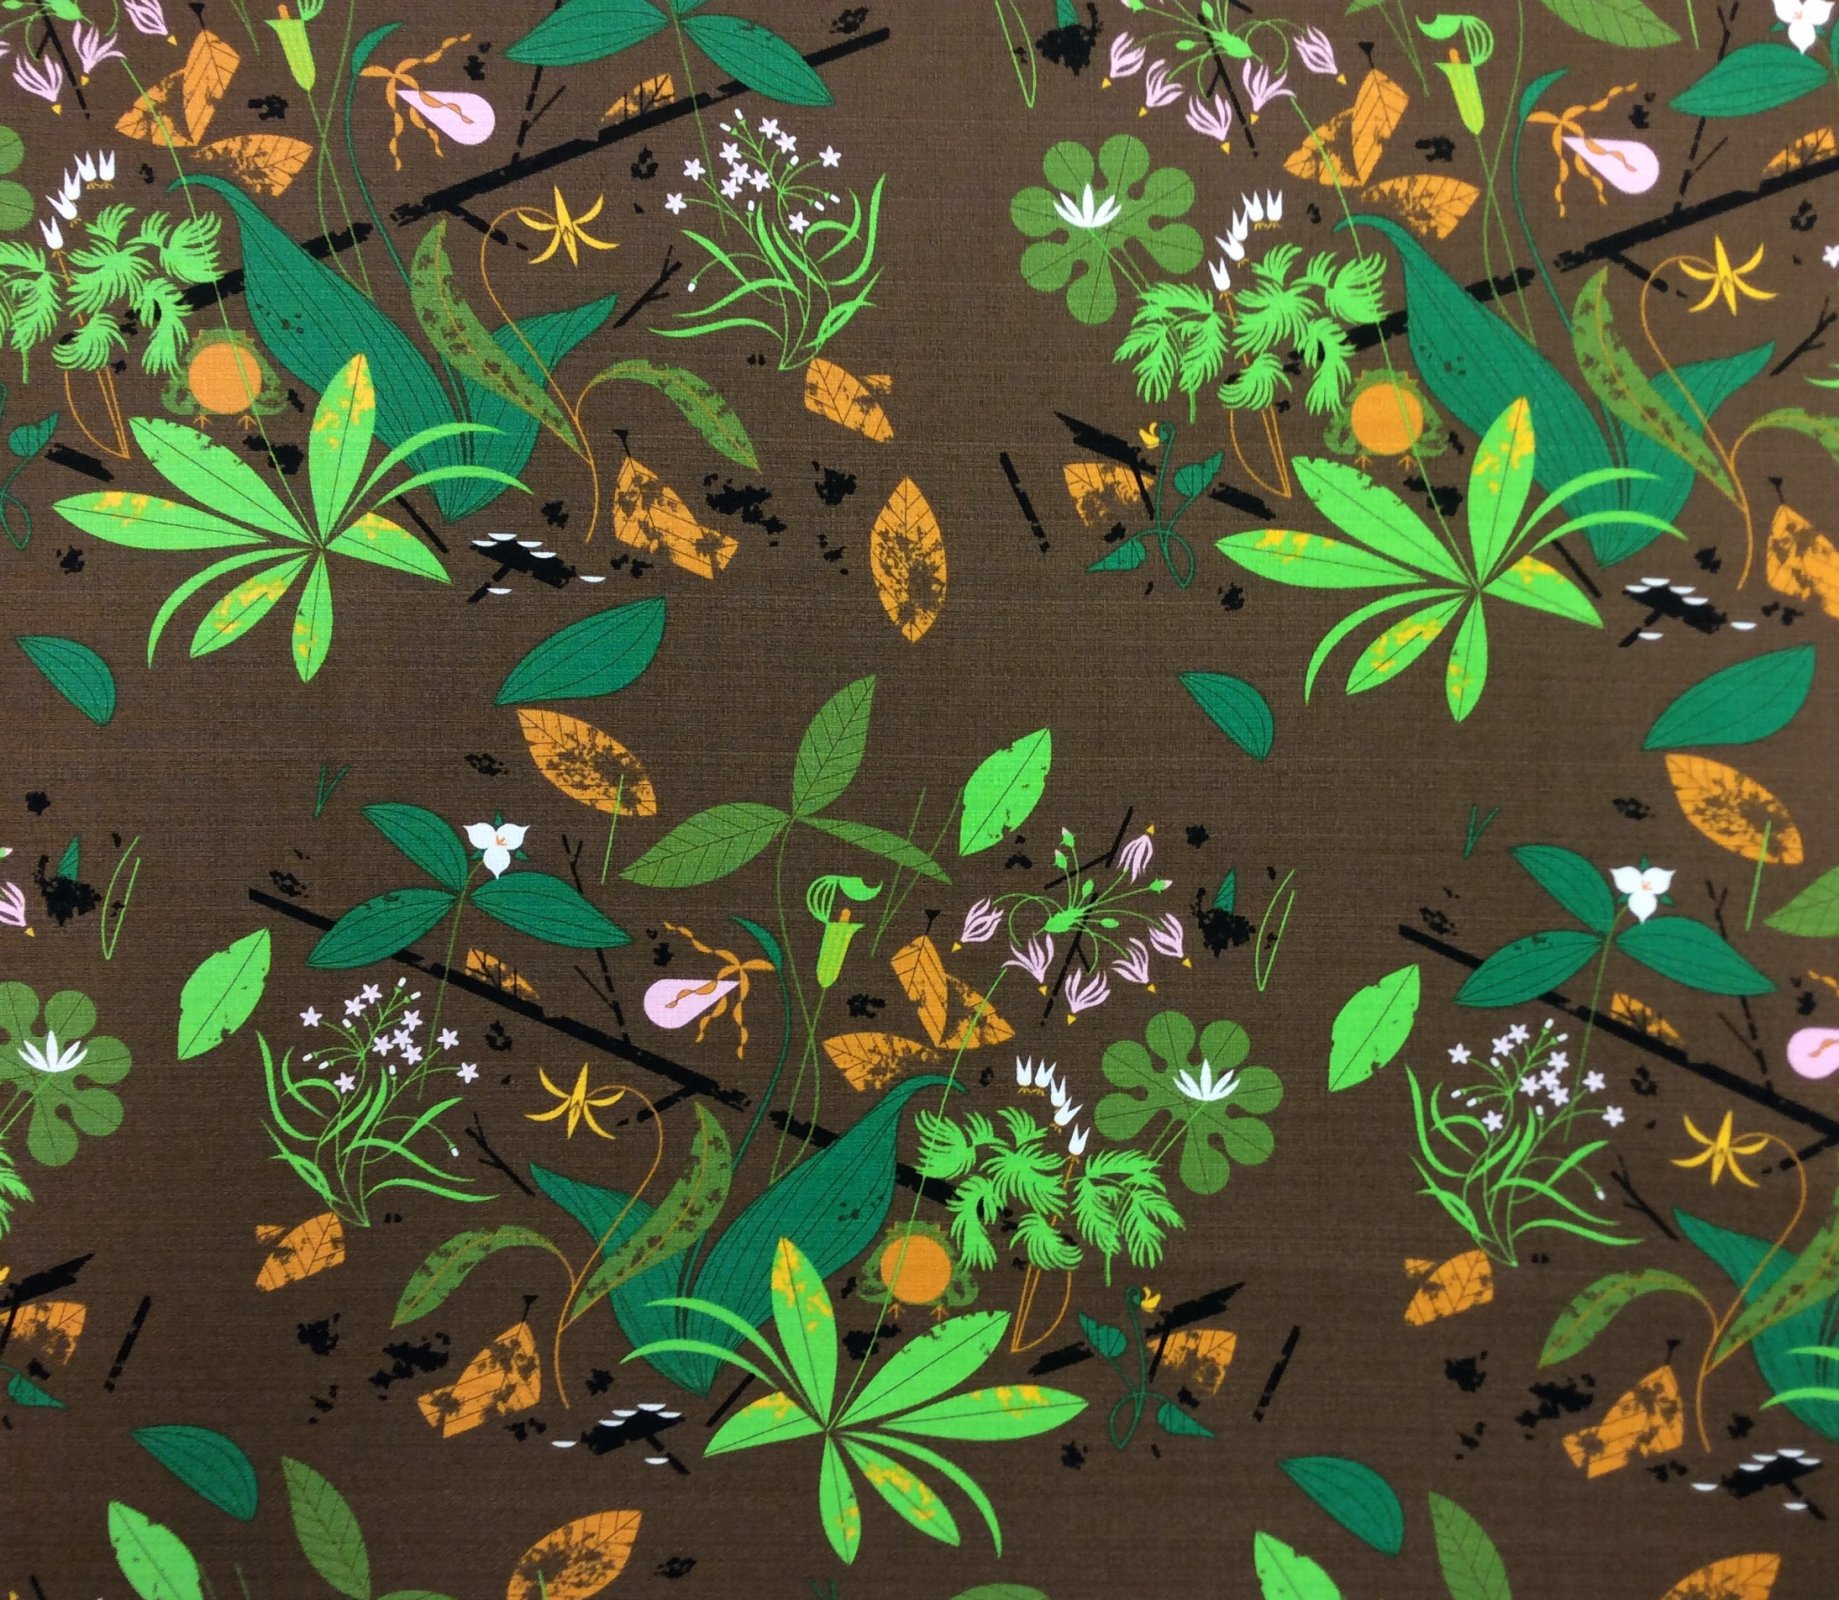 Charley Harper Barkcloth Spring Wildflowers Wide Organic Cotton Mid Century Cotton Home Dec Fabric CHB113